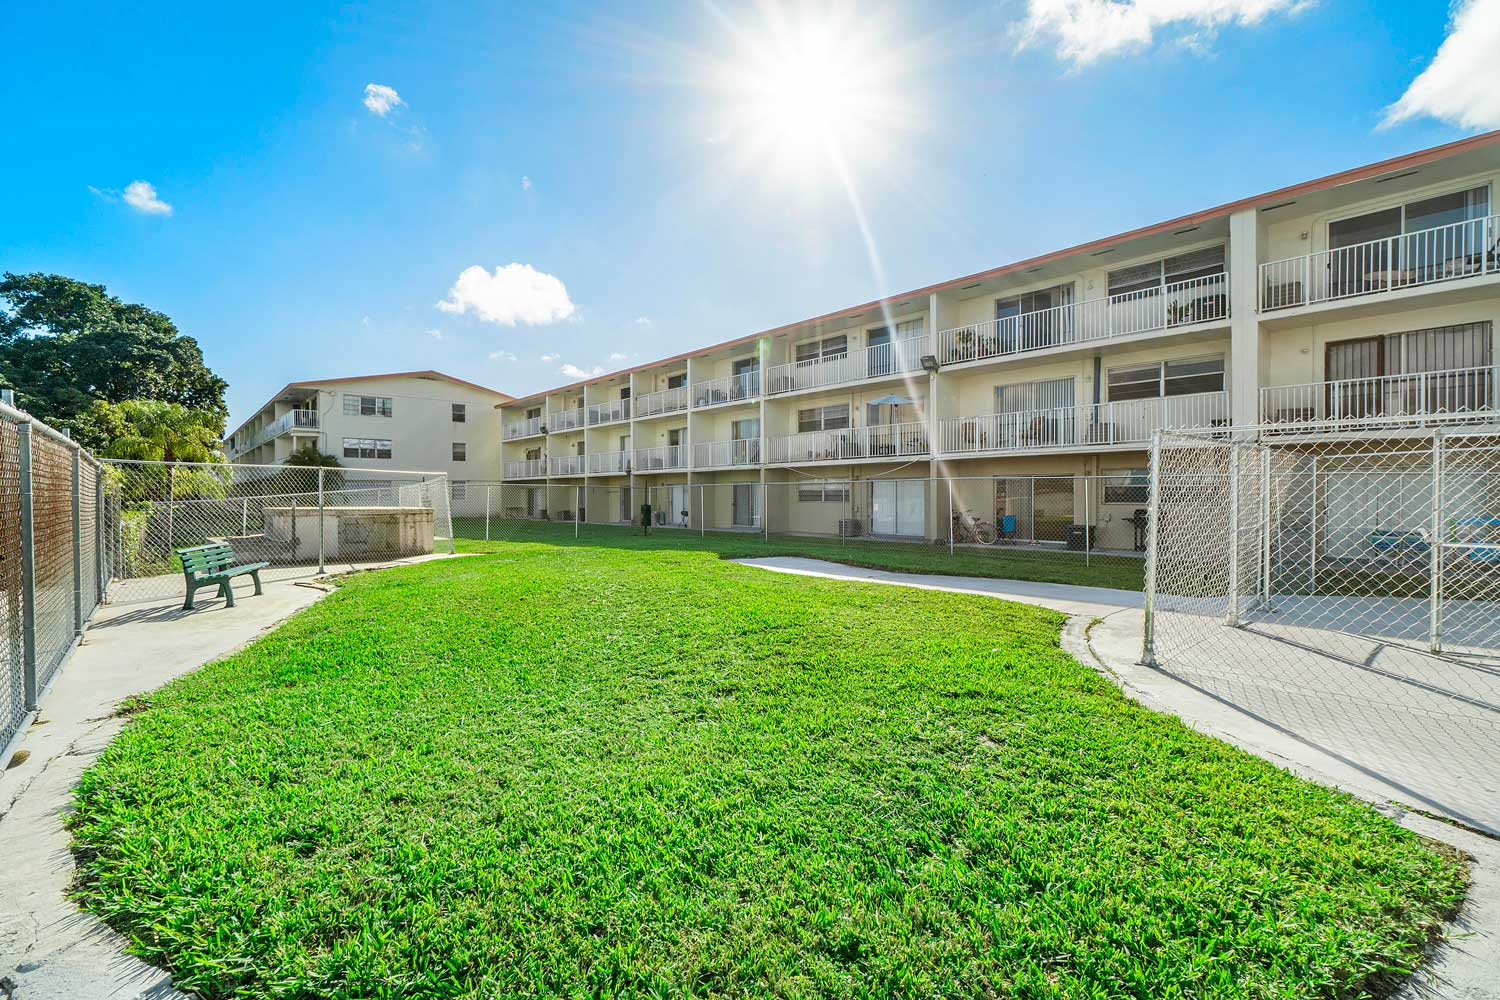 Property View at New Castle Lake Apartments in Miami, FL